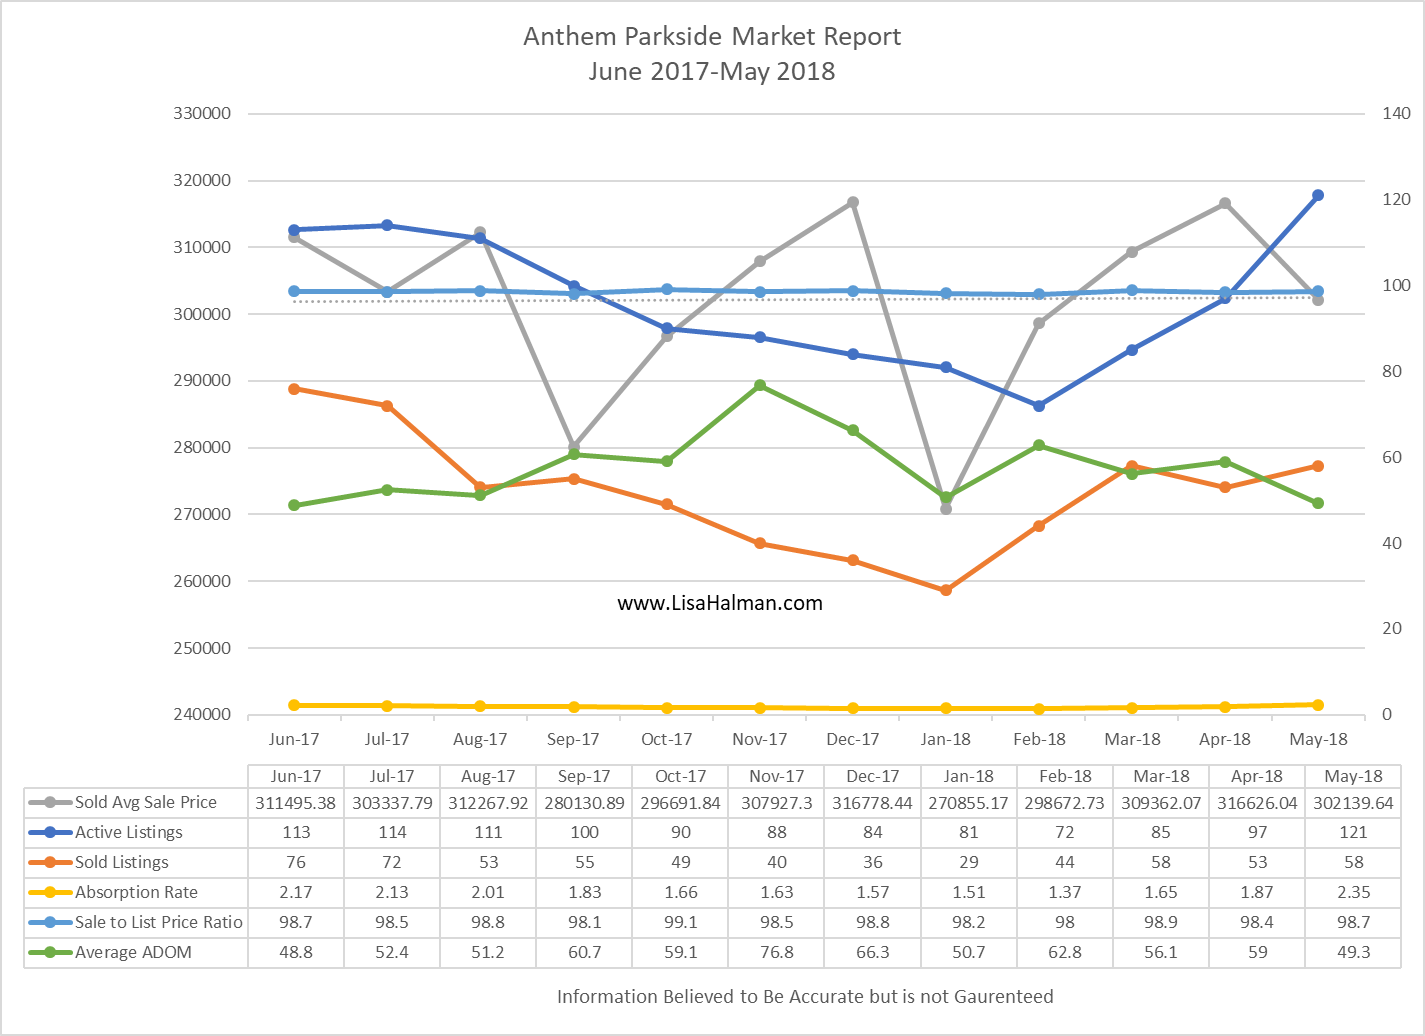 Anthem Parkside Market Update May 2018